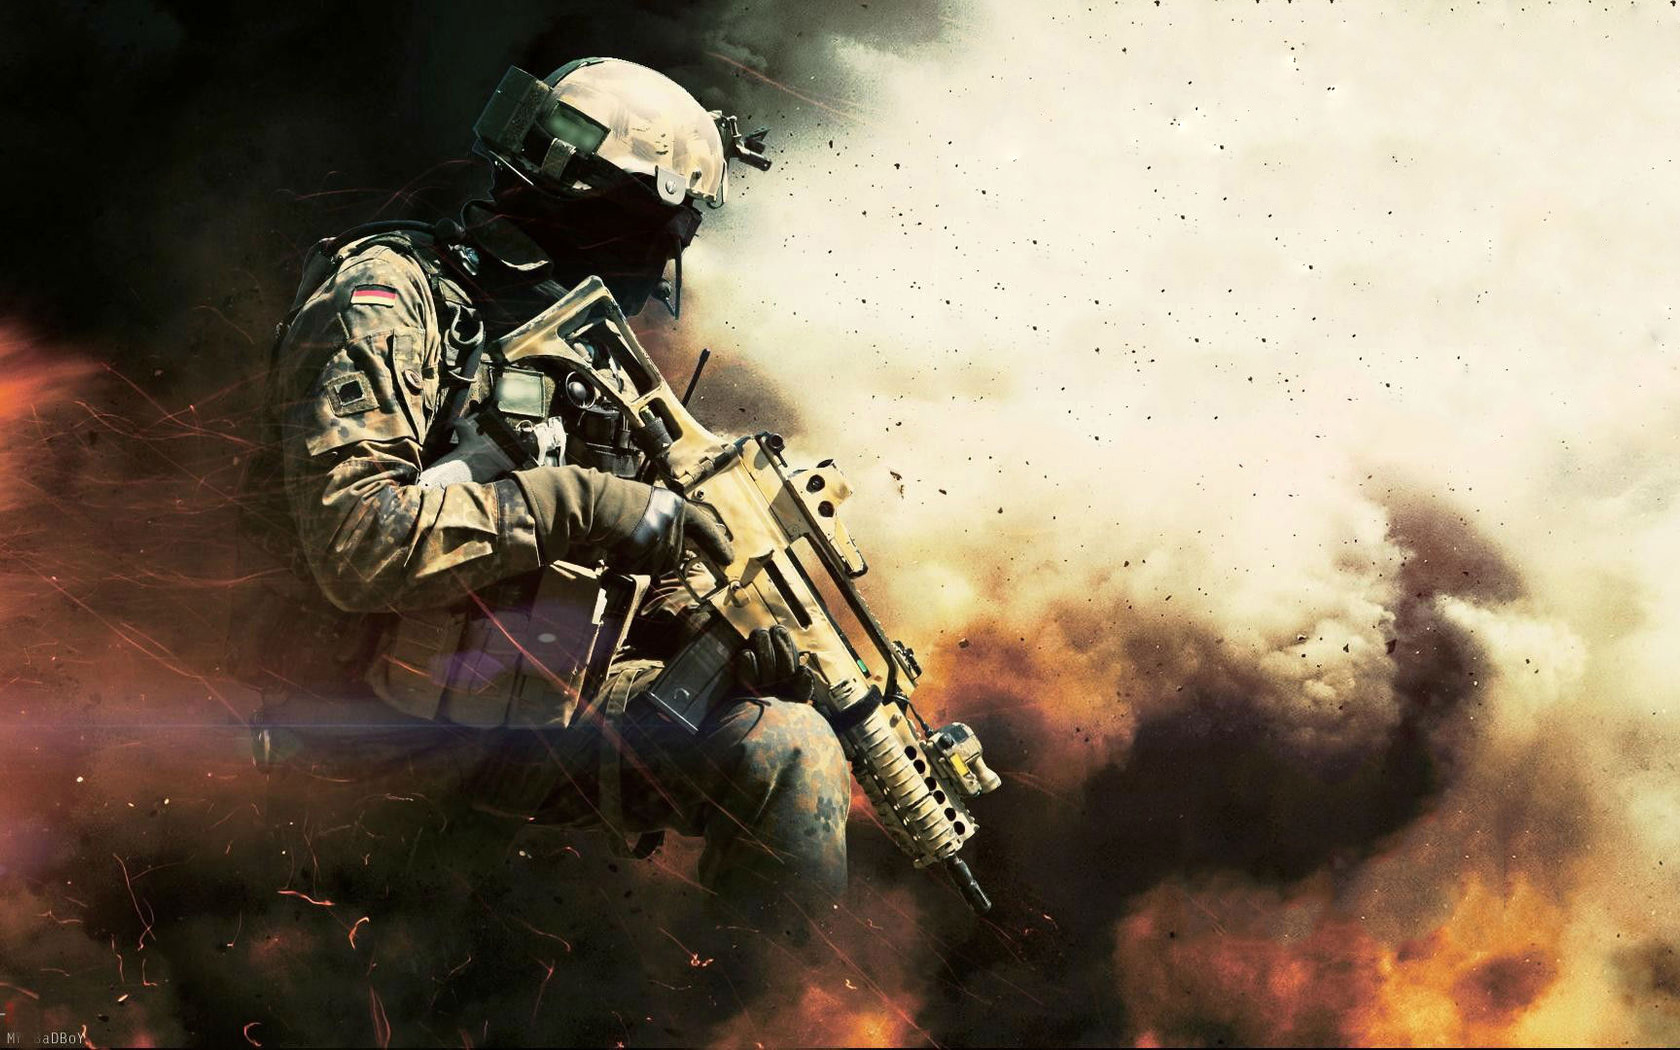 Cool Wallpaper Car Game Explostion Guns Medal Of Honor Wallpaper And Background 1680x1050 Id